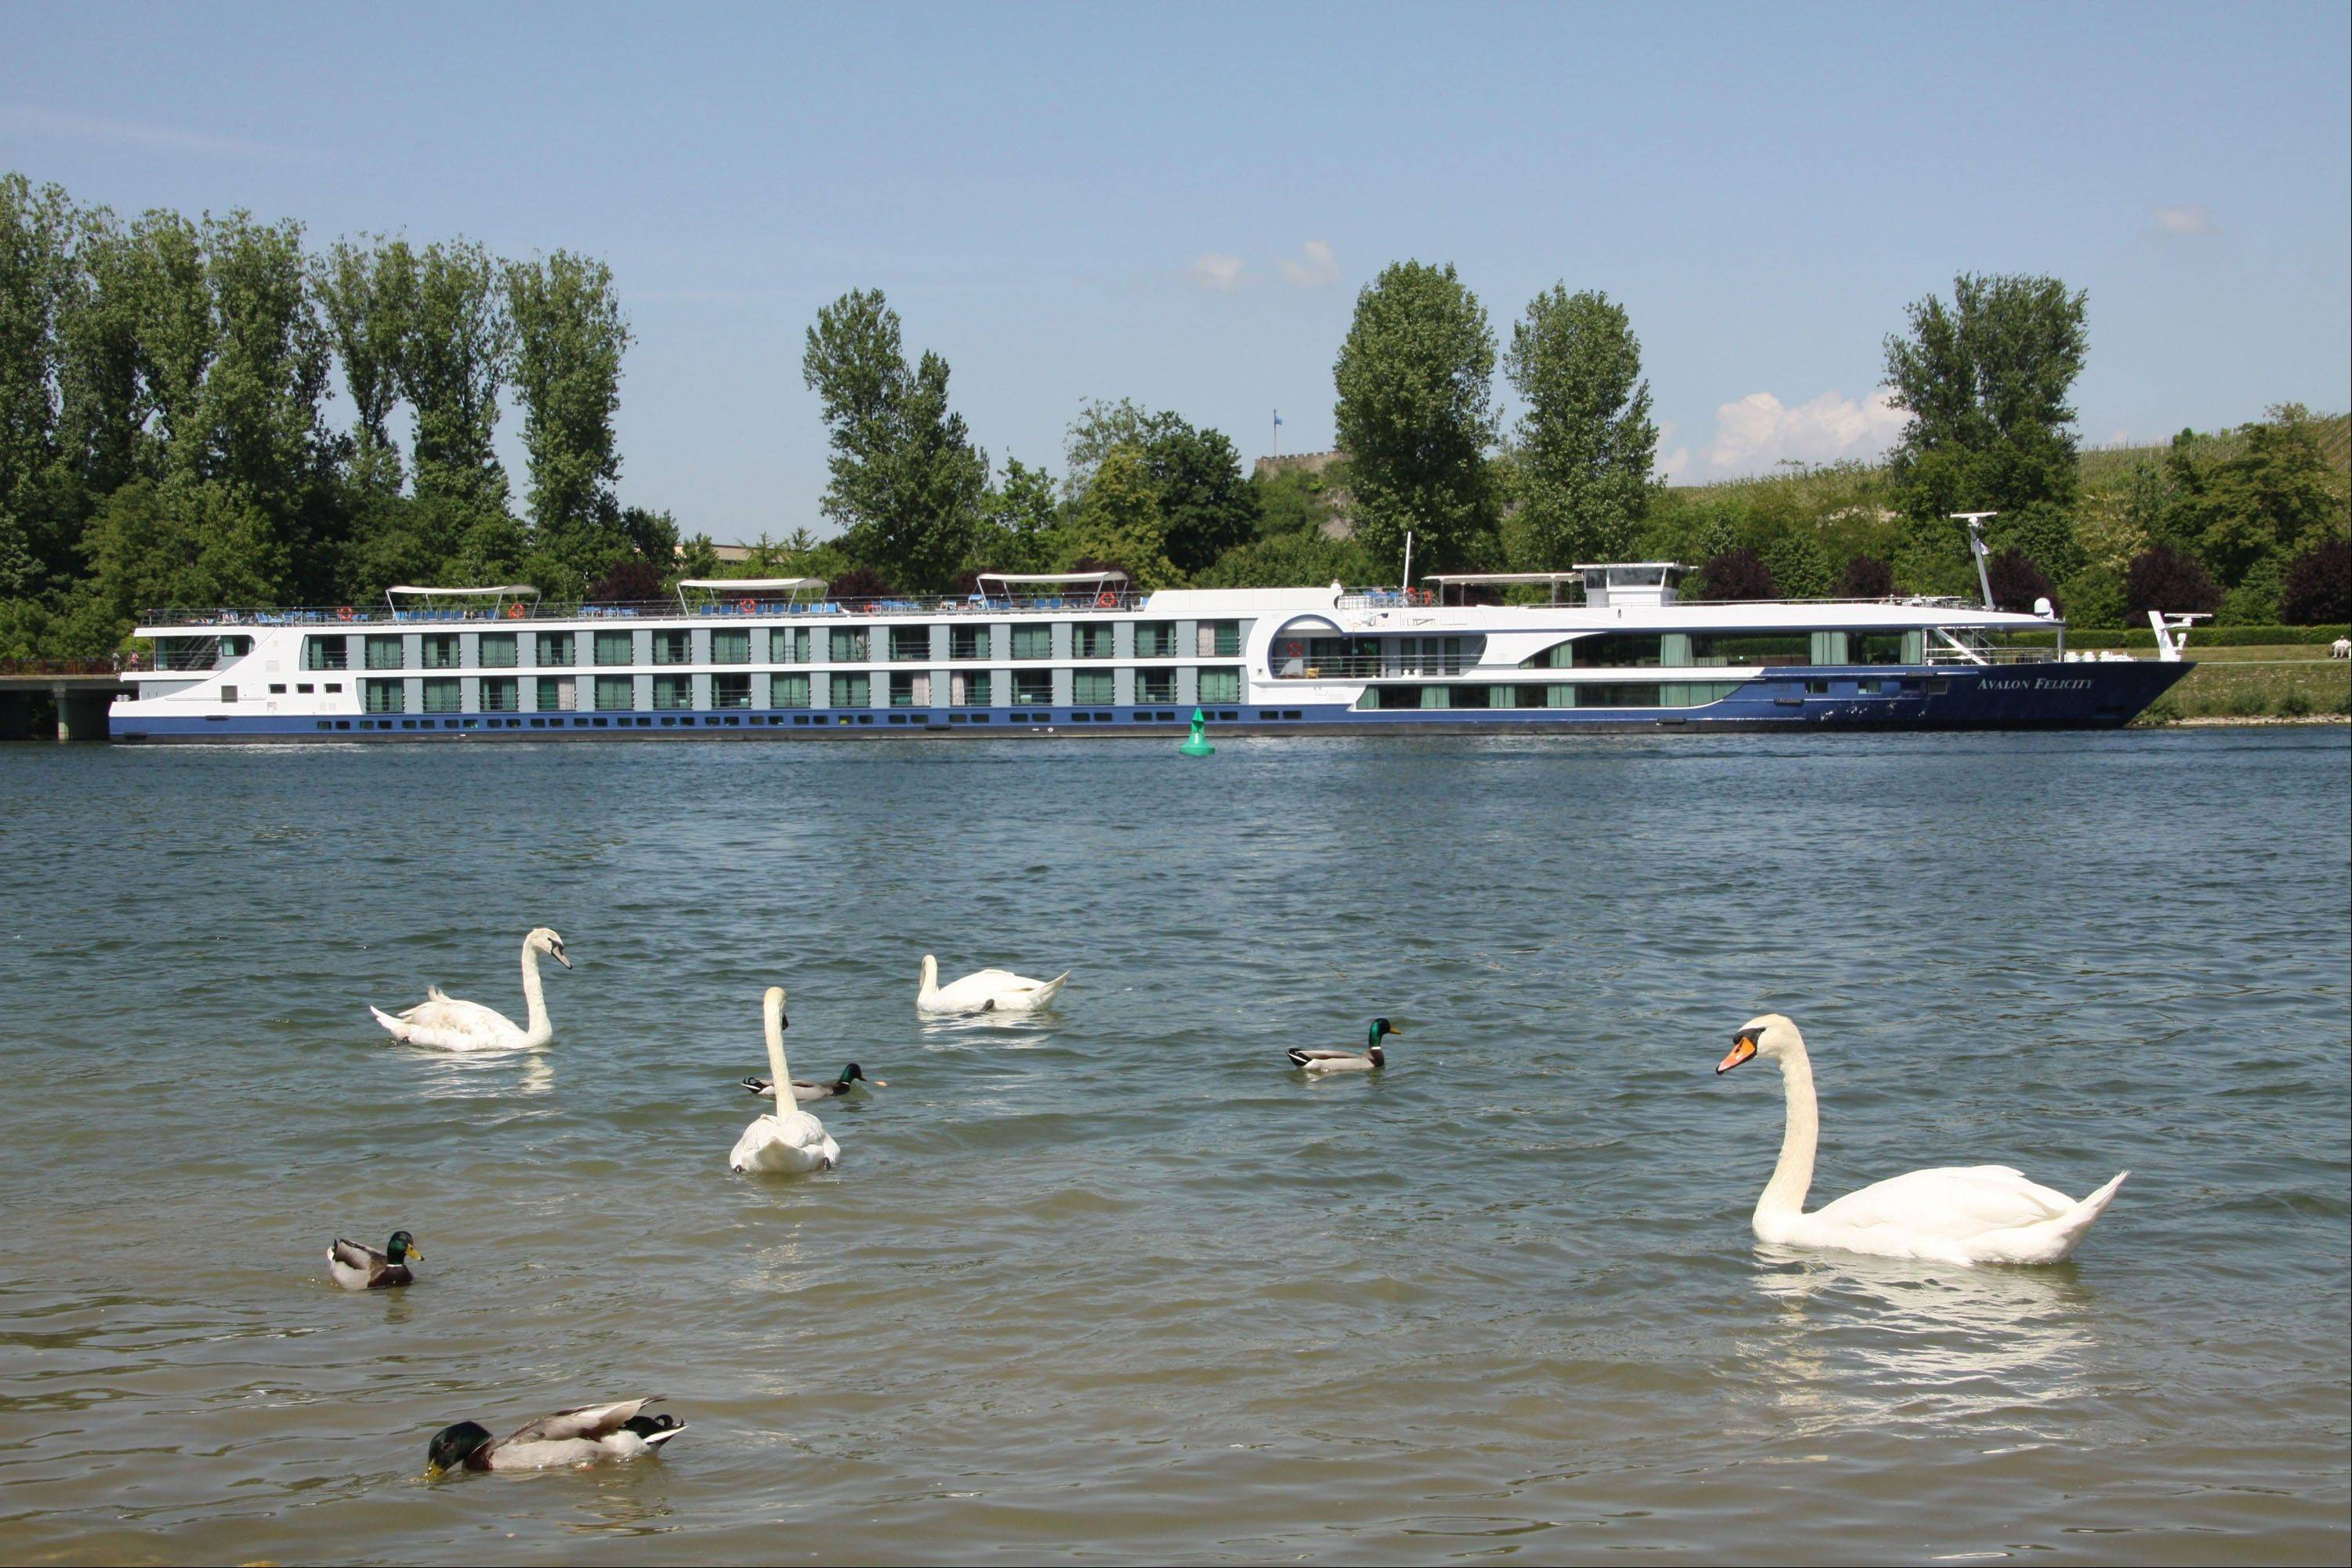 Swans and ducks wade across from the river ship Avalon Felicity on the Rhine River in Breisach, Germany. The small scale of river ships, which typically carry no more than a couple hundred passengers, is a large part of their appeal, in contrast to oceangoing mega-ships that ca